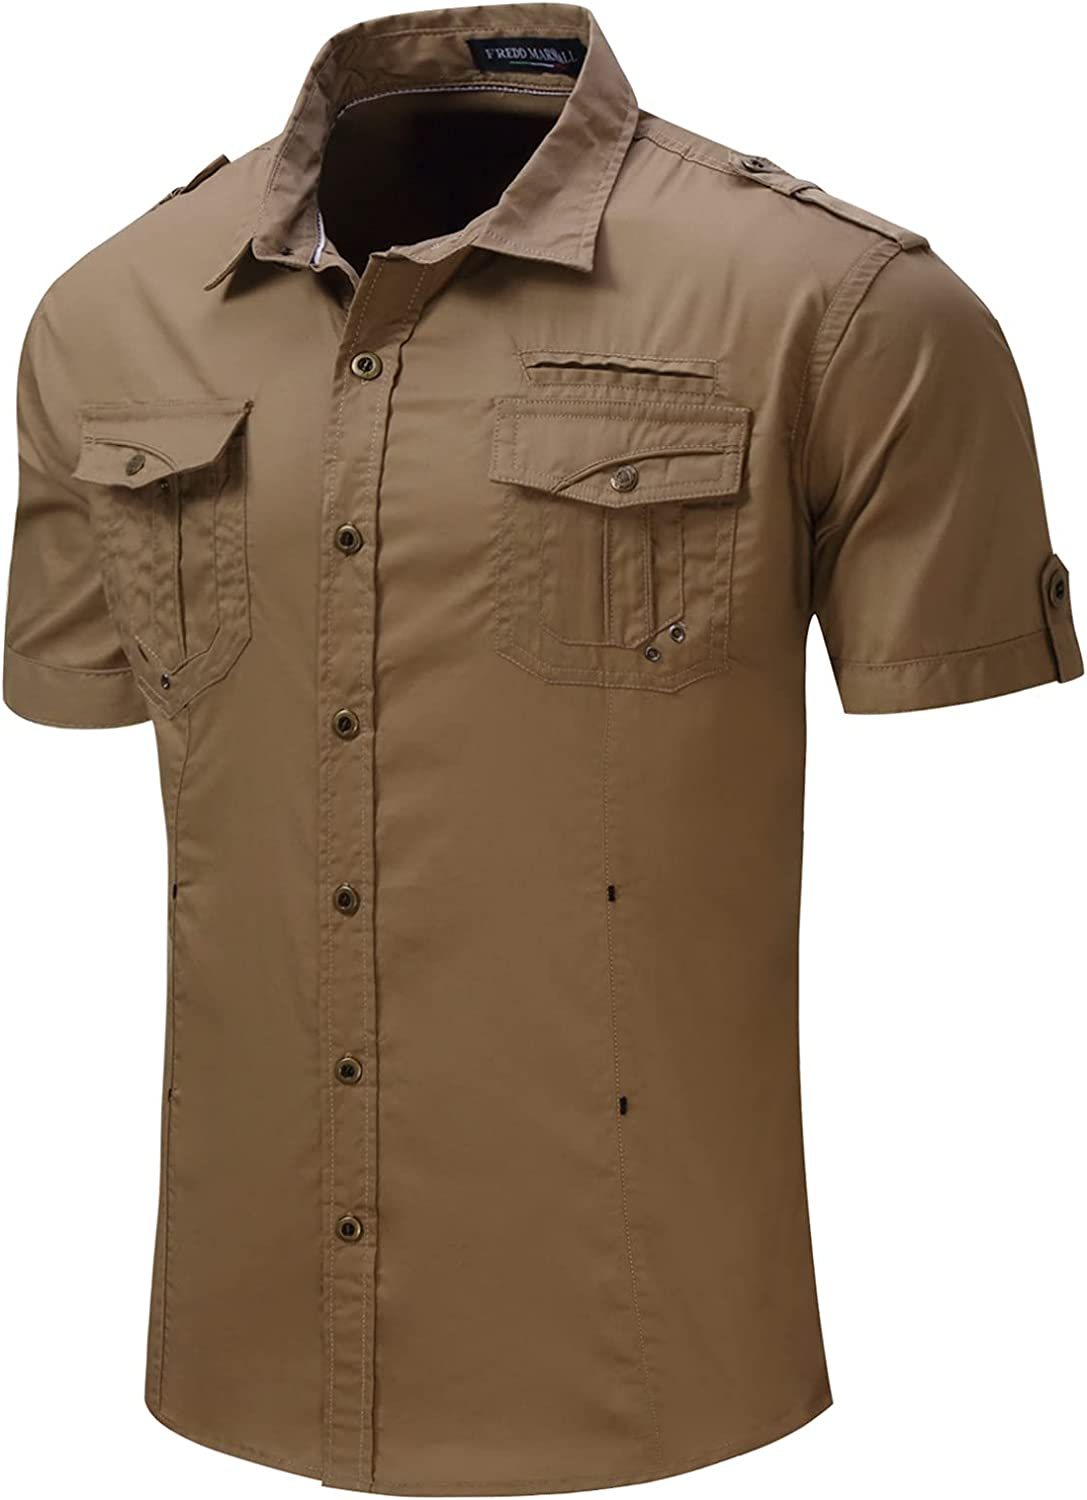 Mens Dress Shirts, Fitted Short Sleeve Elastic Casual Button Down Shirts, Casual Cotton Spread Collar Tops